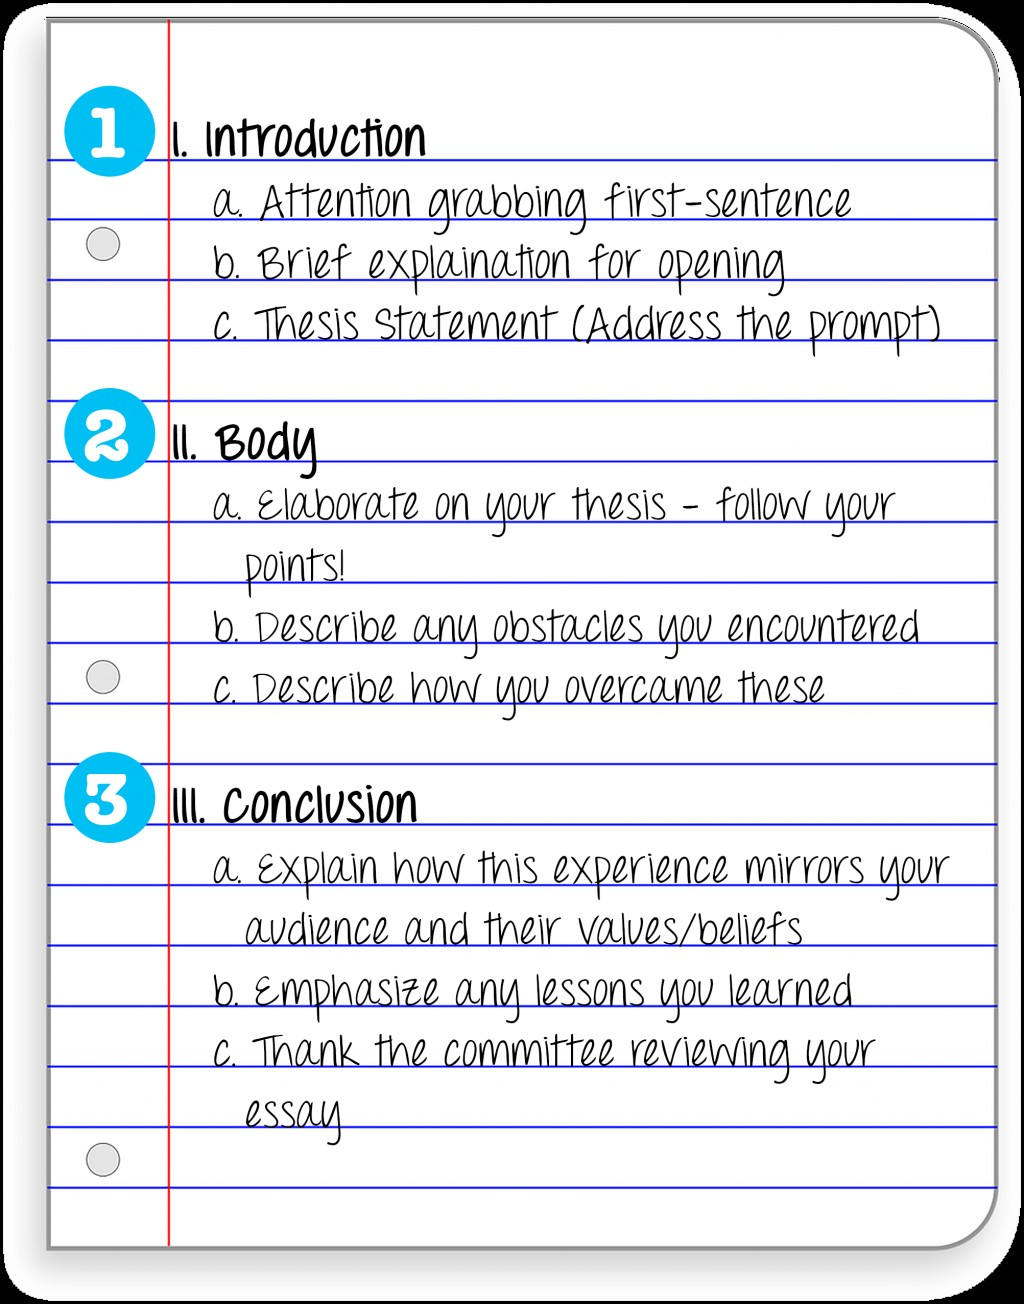 015 Scholessay Essay Example Awesome Tips Narrative For Middle School And Tricks Large